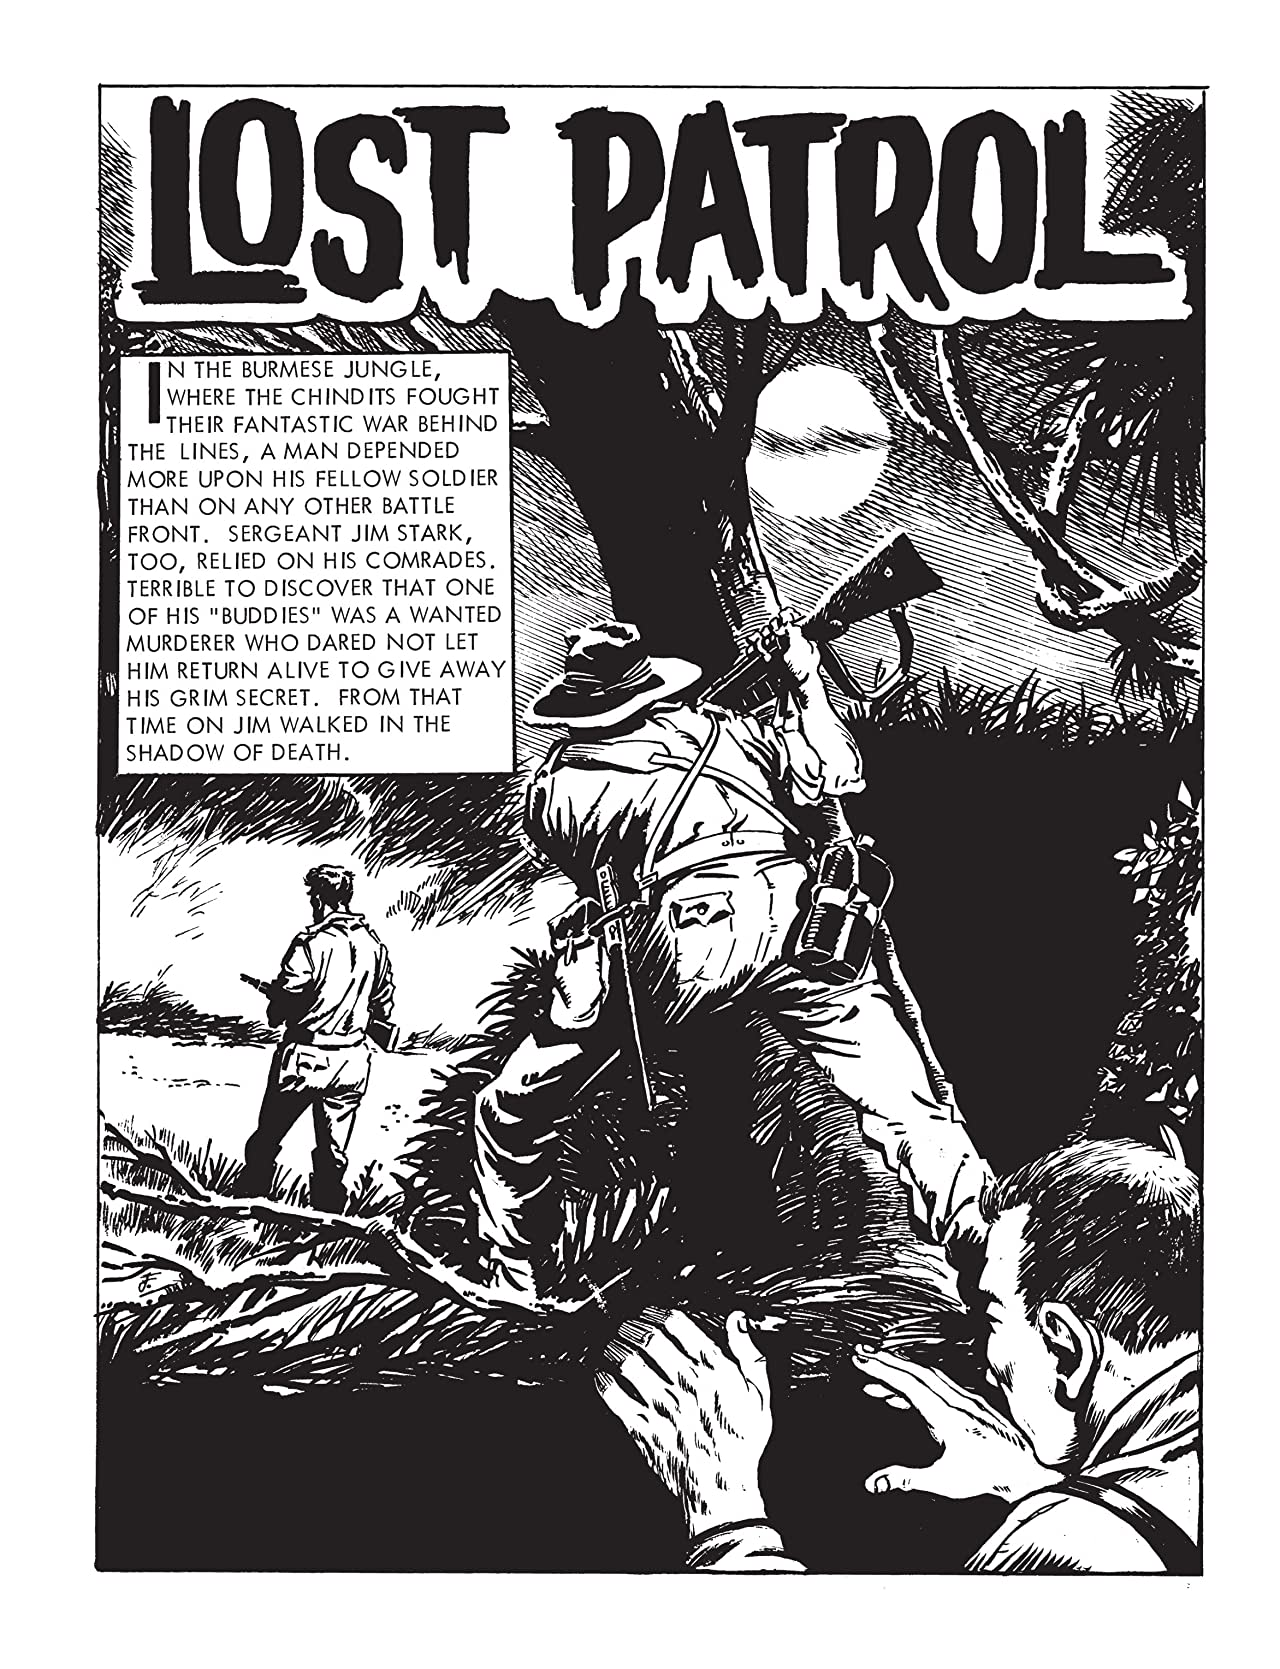 Commando #4820: Lost Patrol